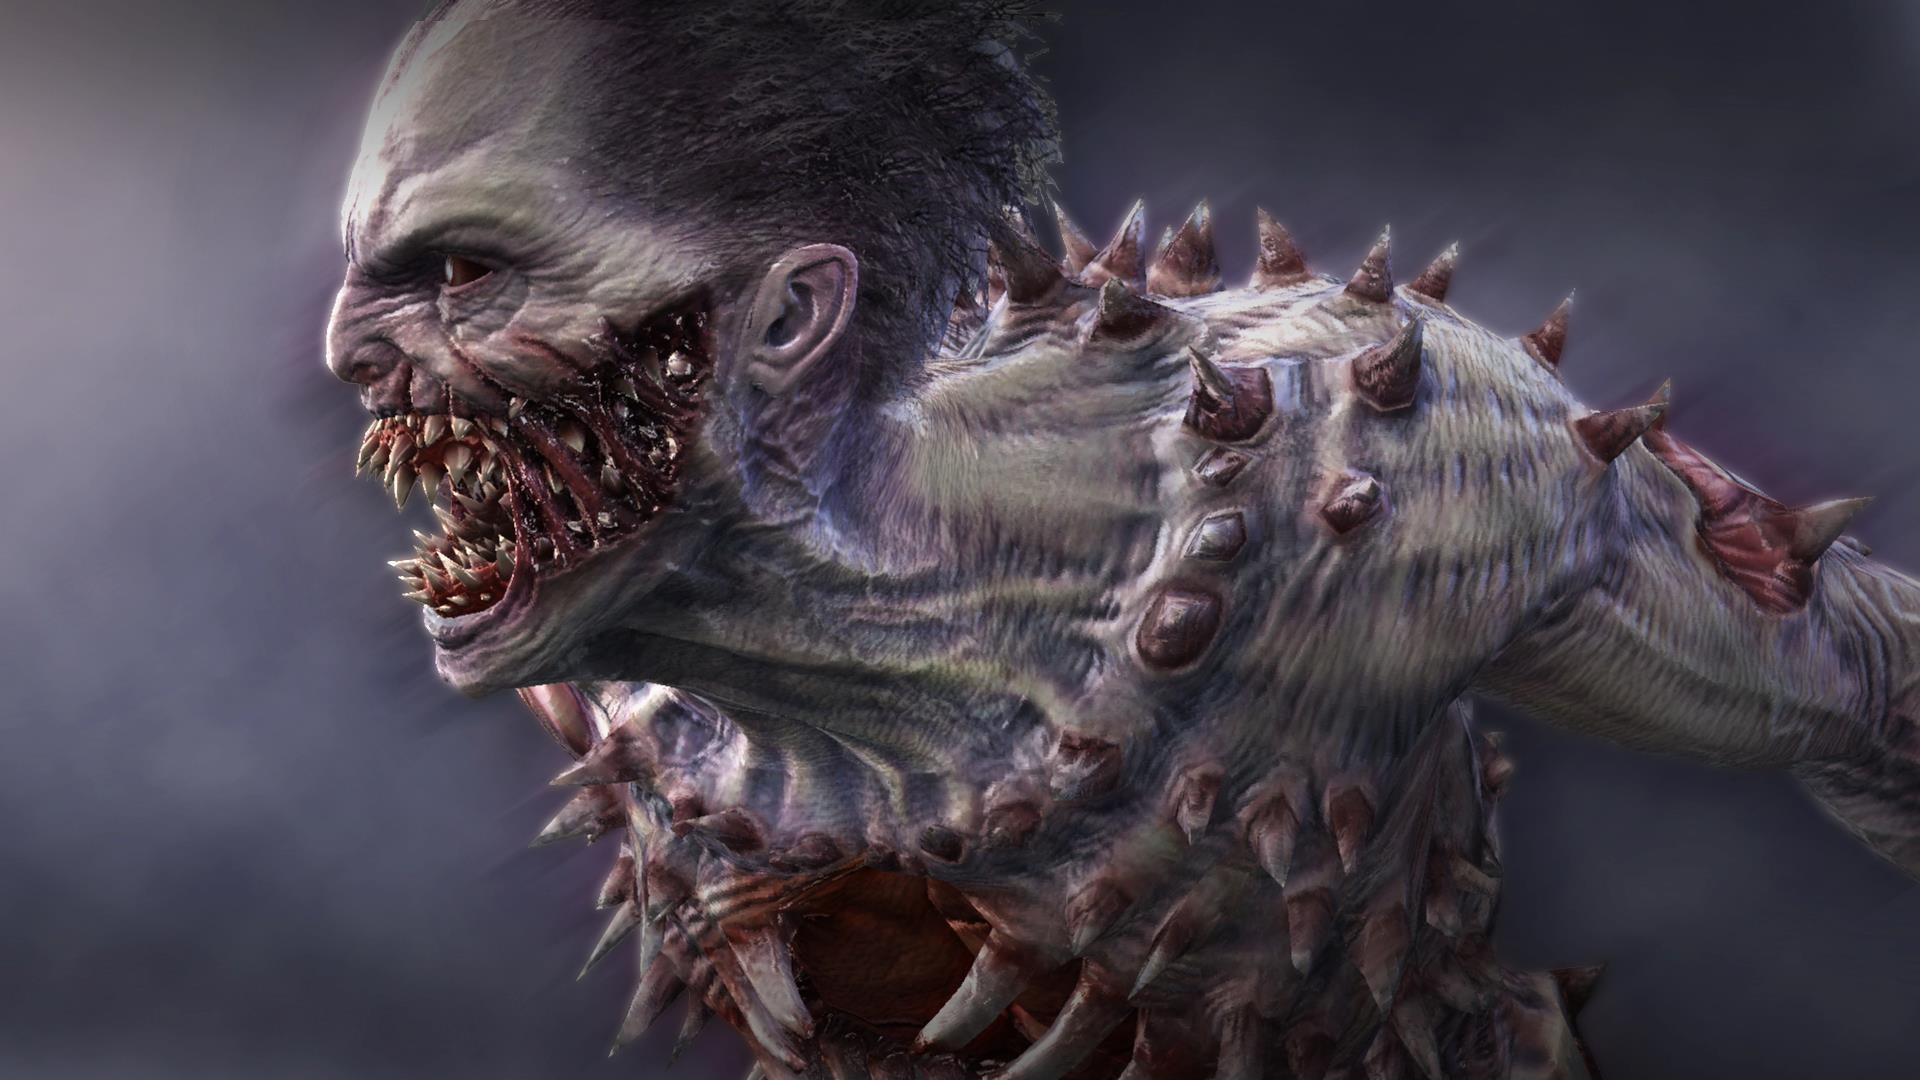 Video Game – Amy Distrubing Blood Scary Monster Demon Wallpaper